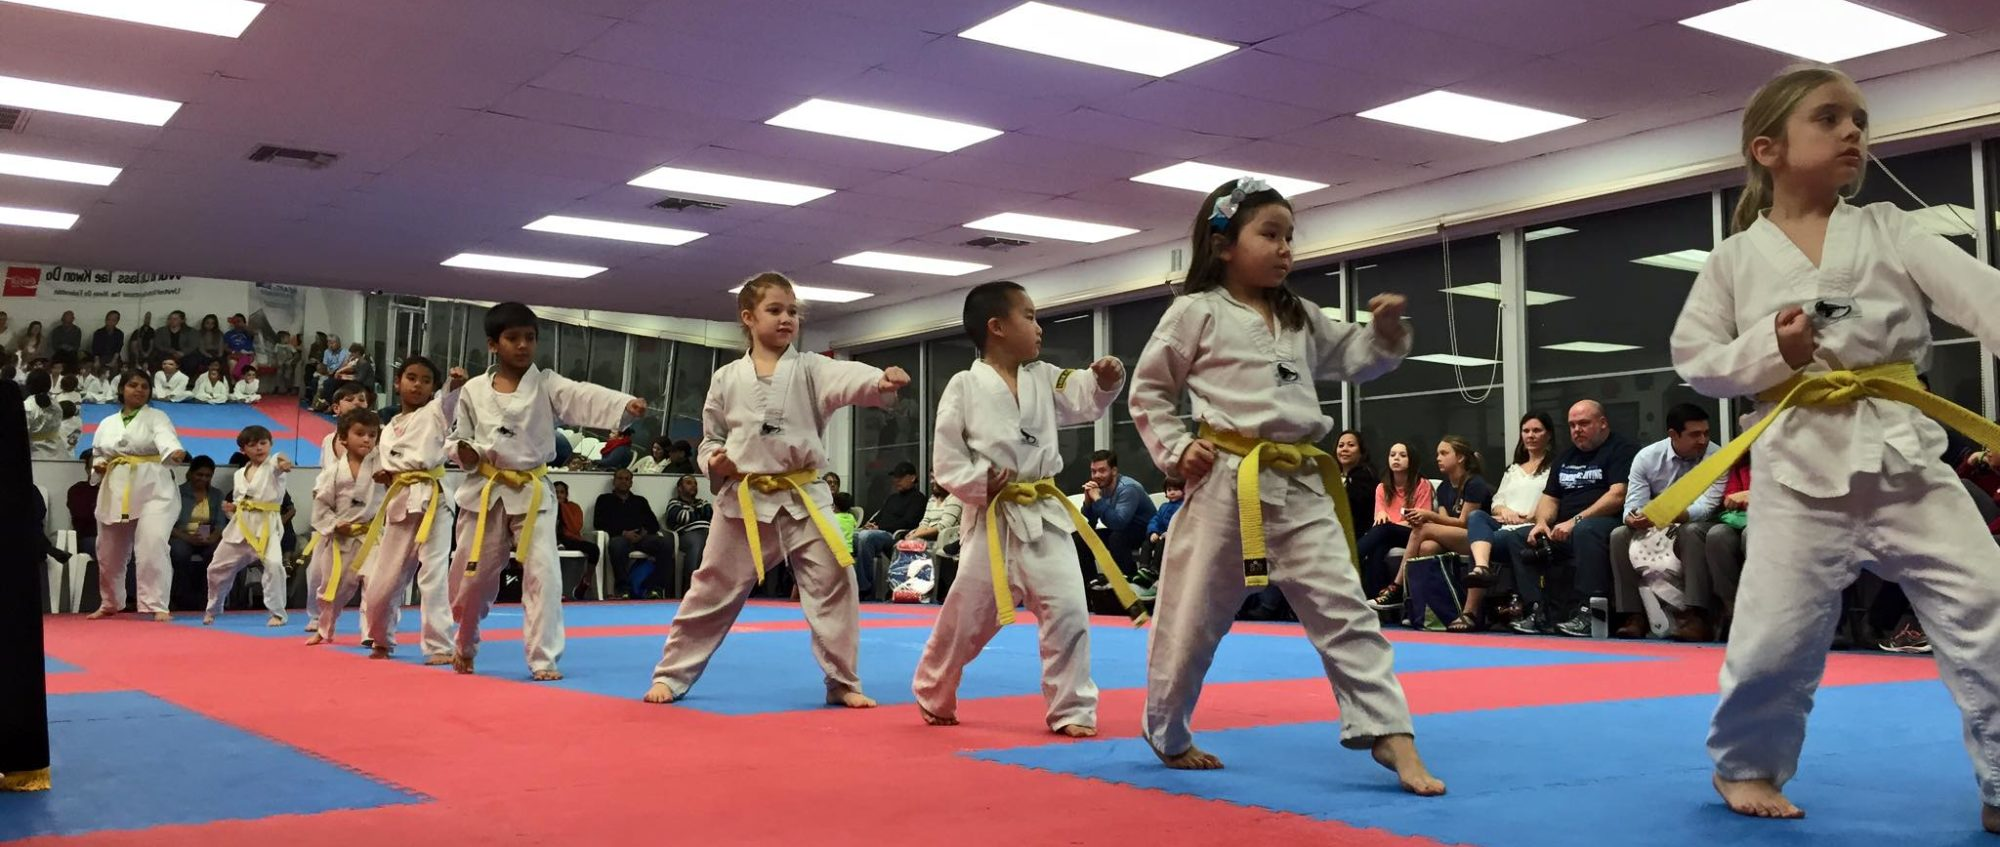 National School of Martial Arts - Olympic Taekwondo